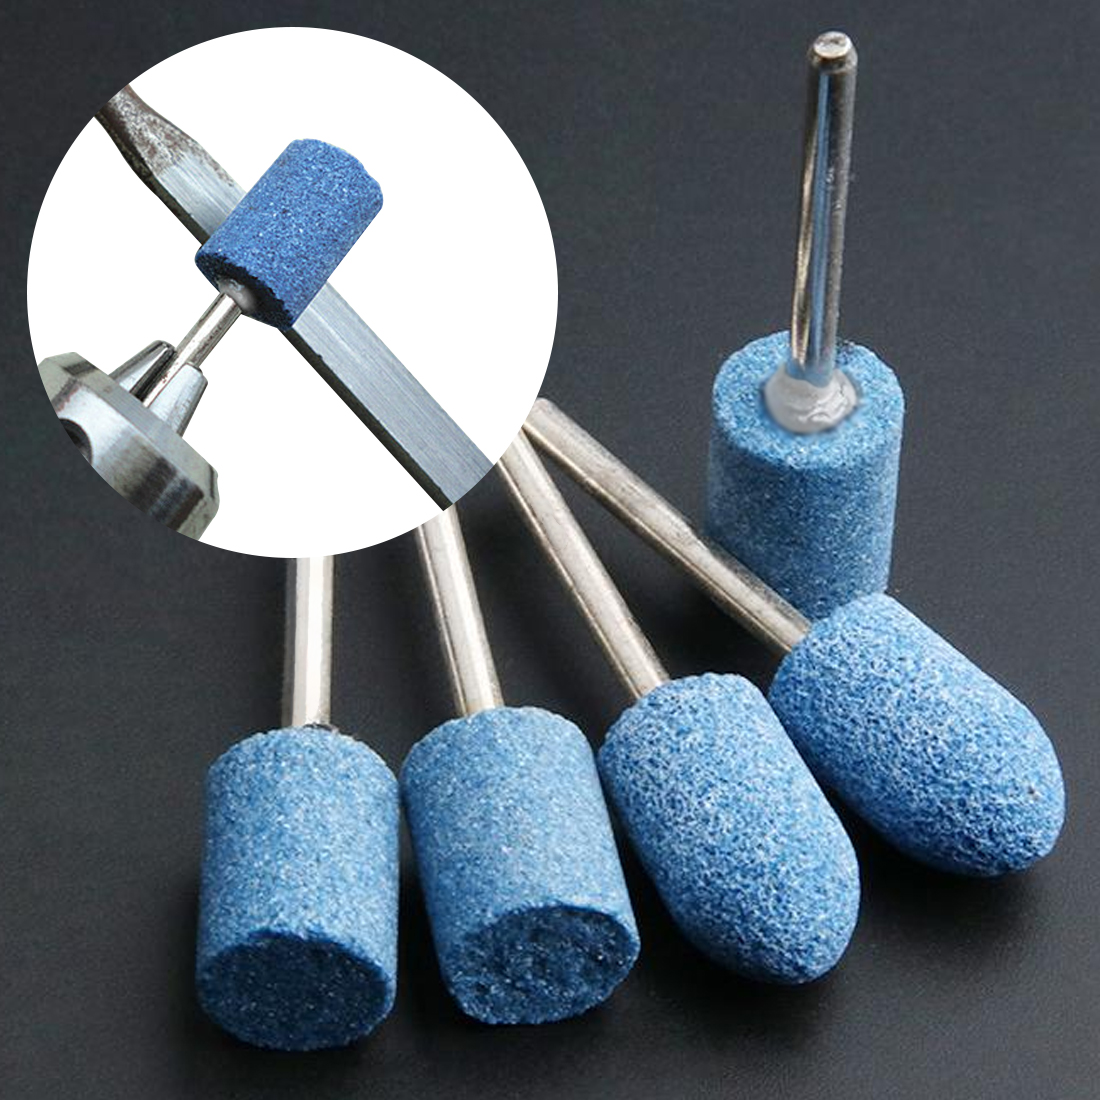 10pc Multi Tool Grinding Burr Wheel 1/8 Shank Blue Abrasive Mounted Stone Set For Dremel 4000 3000 Dremel Rotary Tools